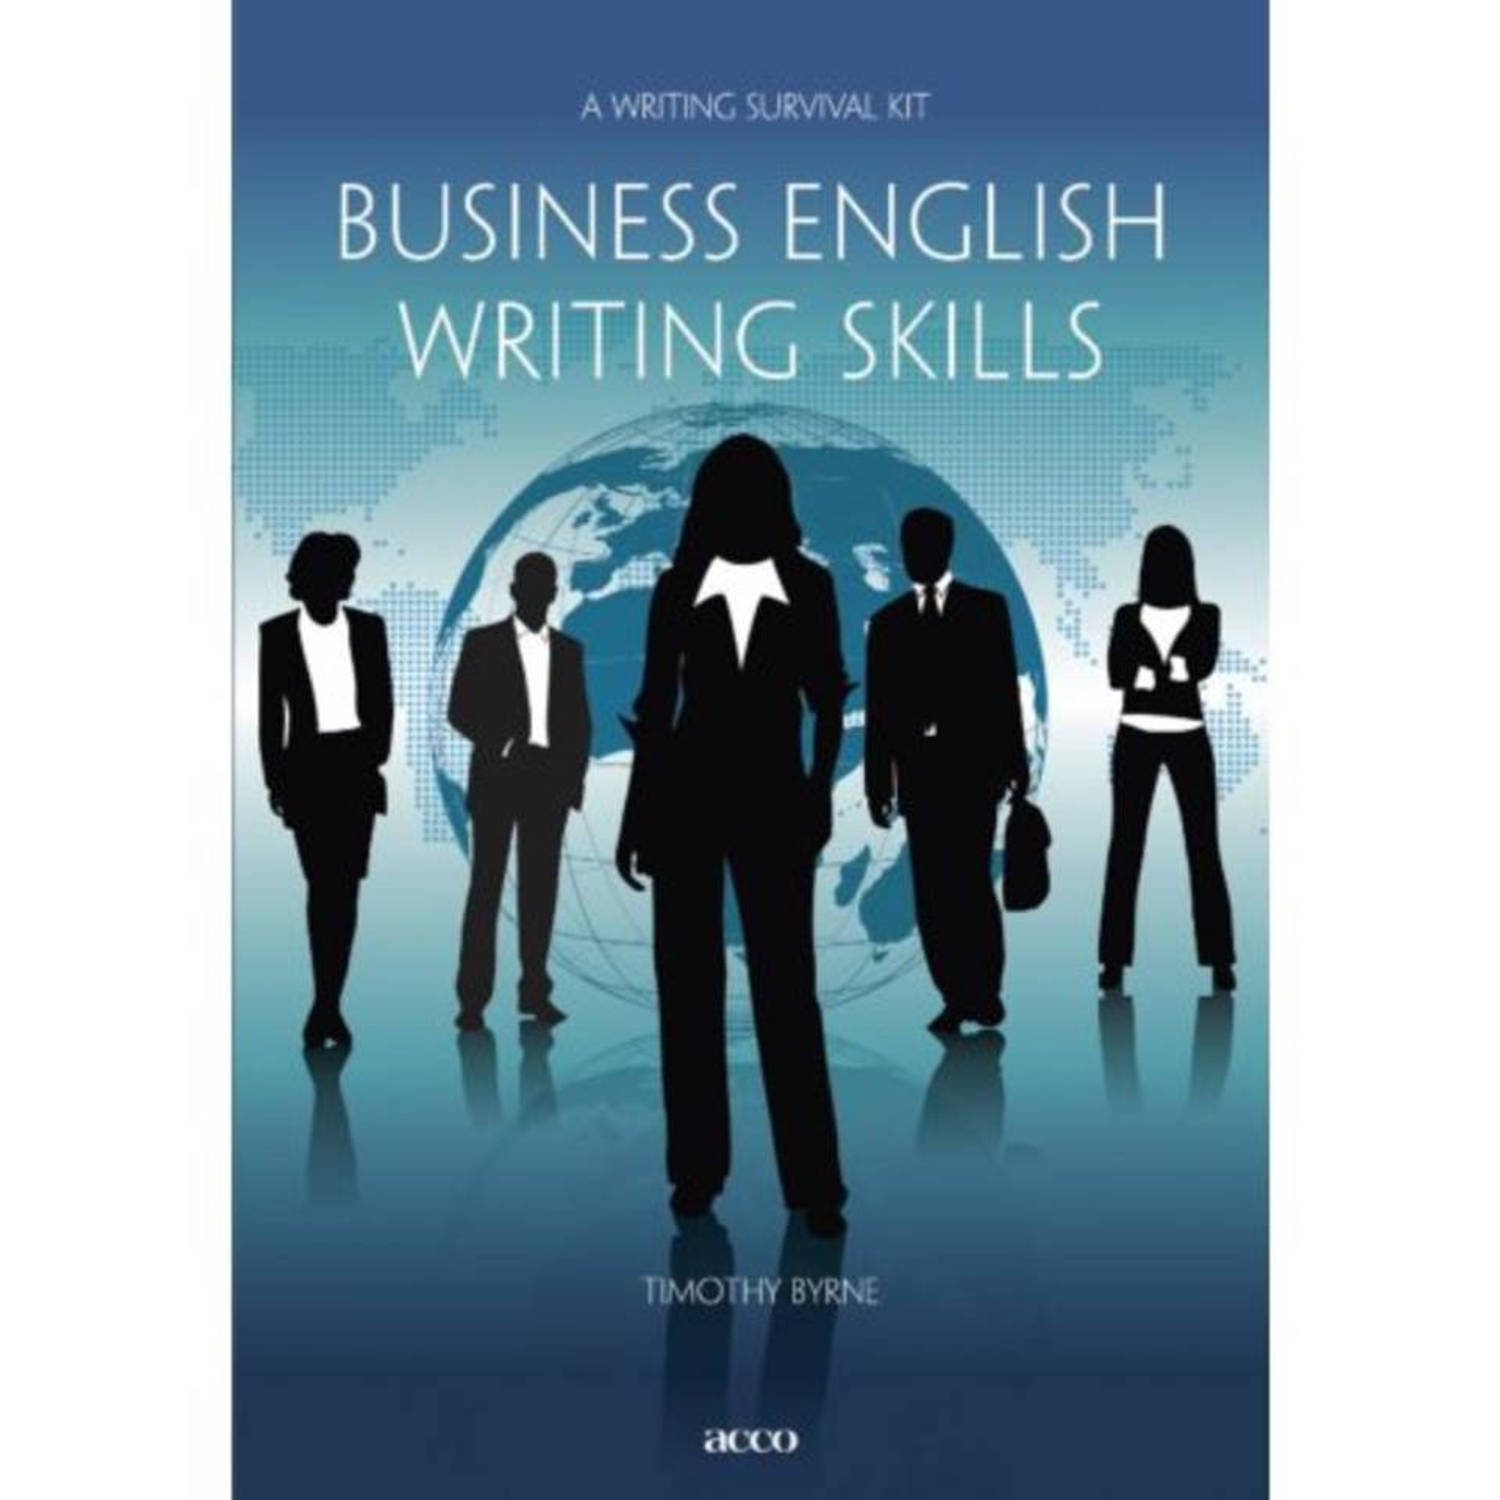 Business English writing skills